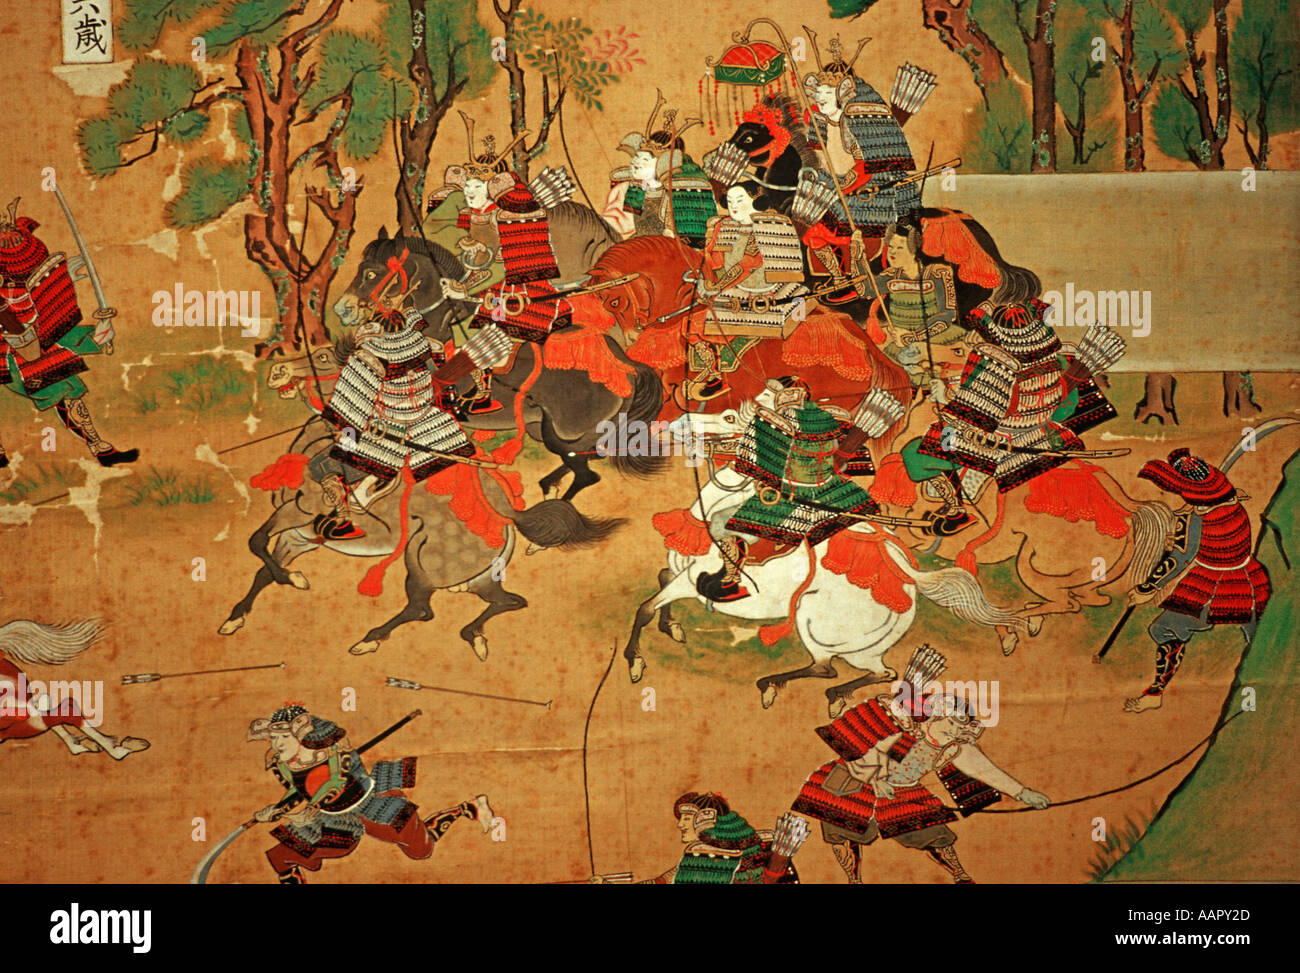 an analysis of samurai battle scenes painted in the 19th century Military art is art with a military subject matter, regardless of its style or medium the battle scene is one of the oldest types of art in developed civilizations, as rulers have always been keen to celebrate their victories and intimidate potential opponents.